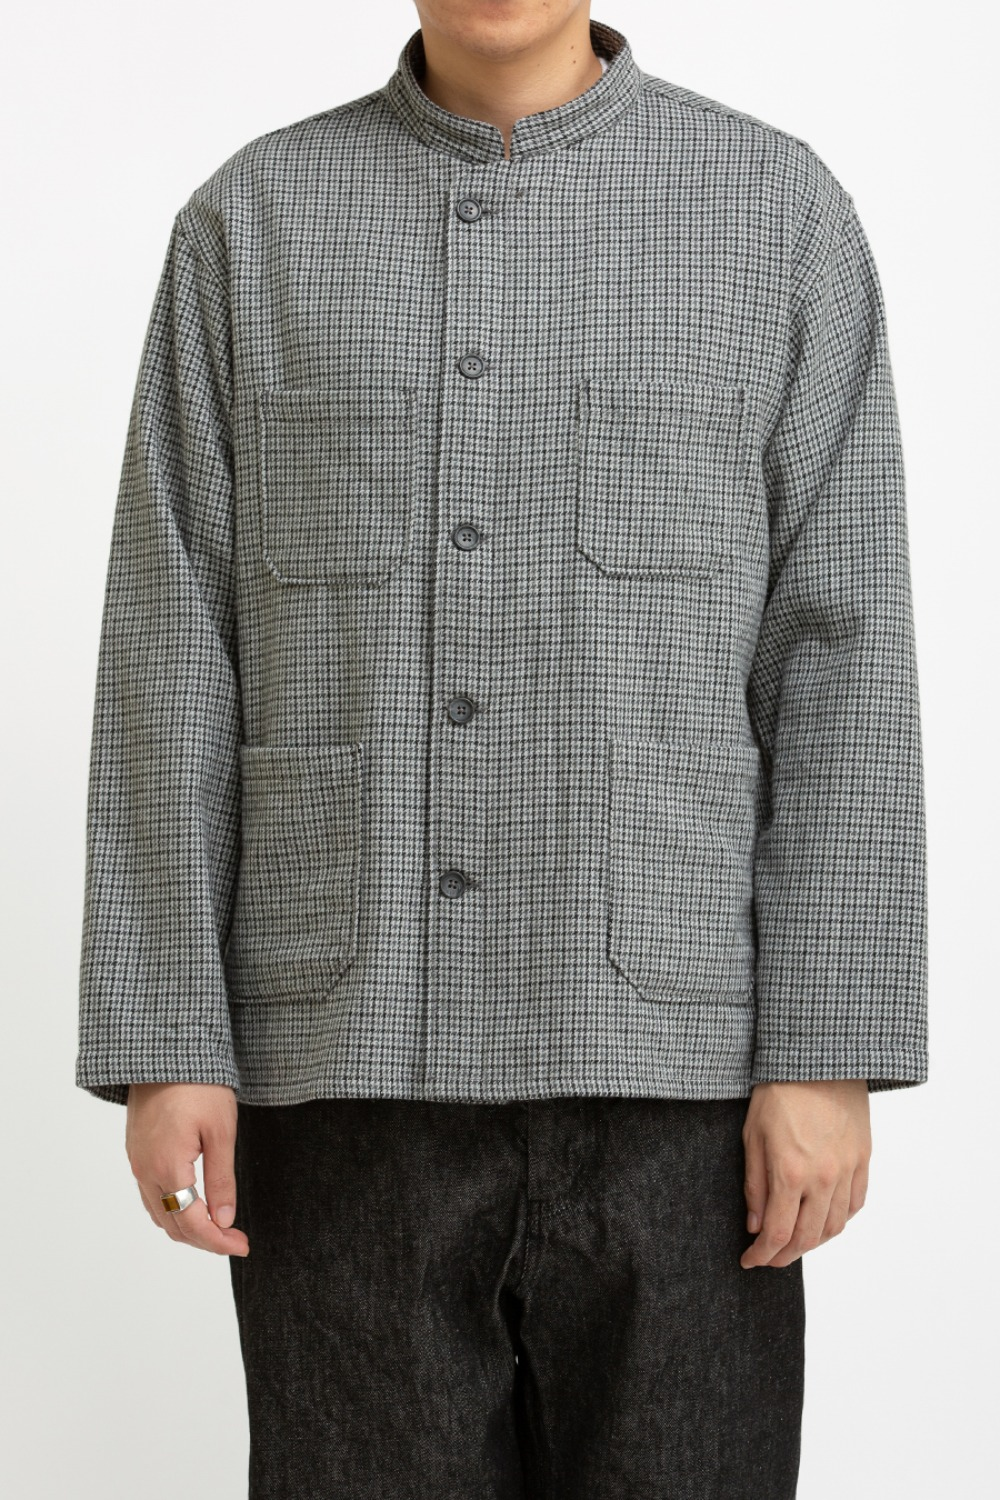 DAYTON SHIRT GREY WOOL POLY GUNCLUB